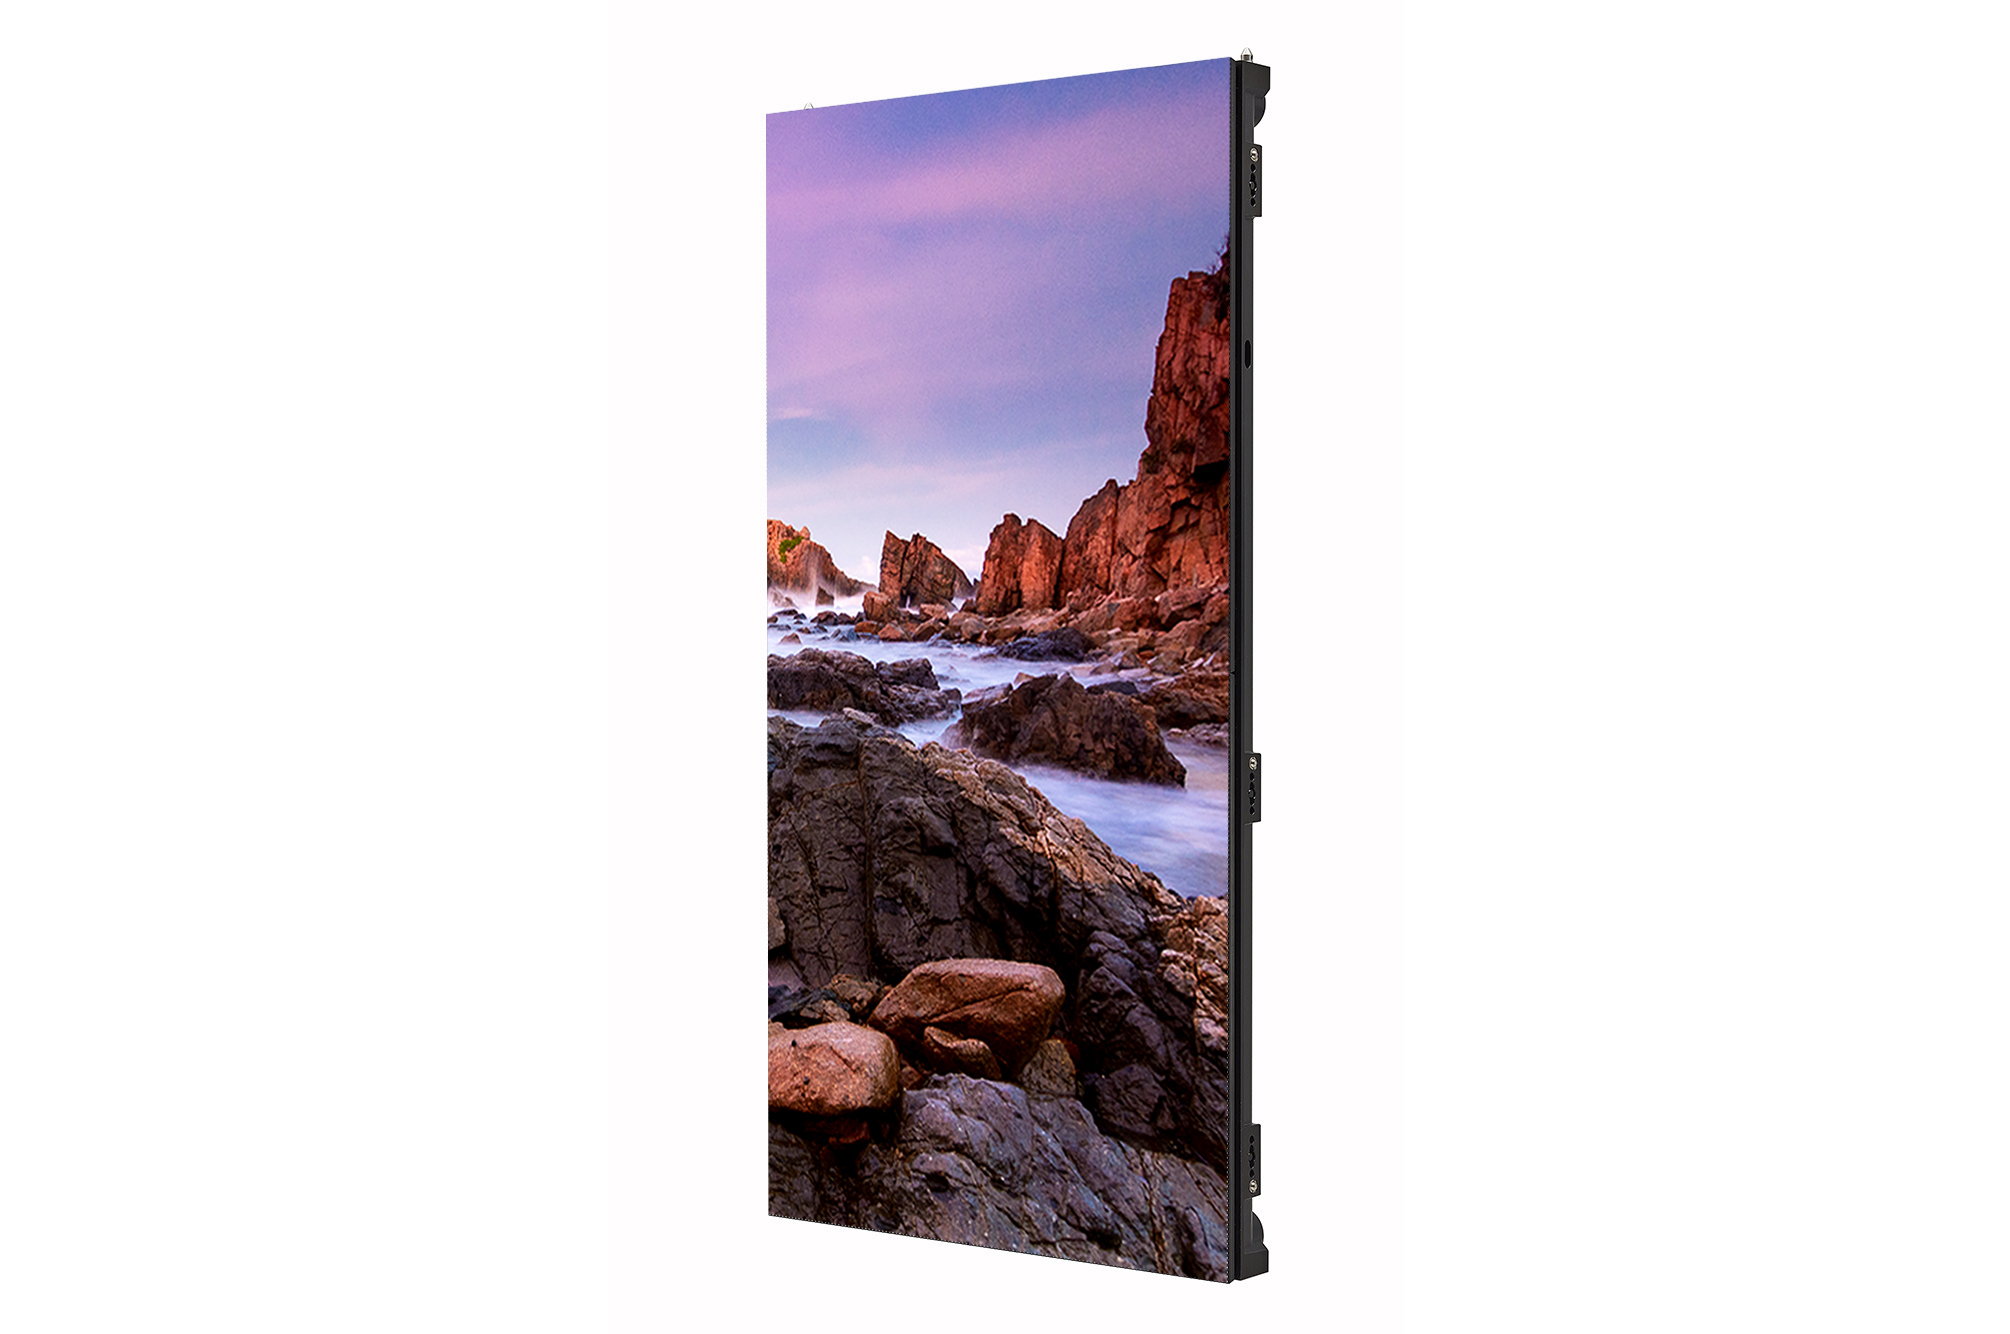 Digital Signage LSCA, left 45 degree side view with inscreen, 500x1000